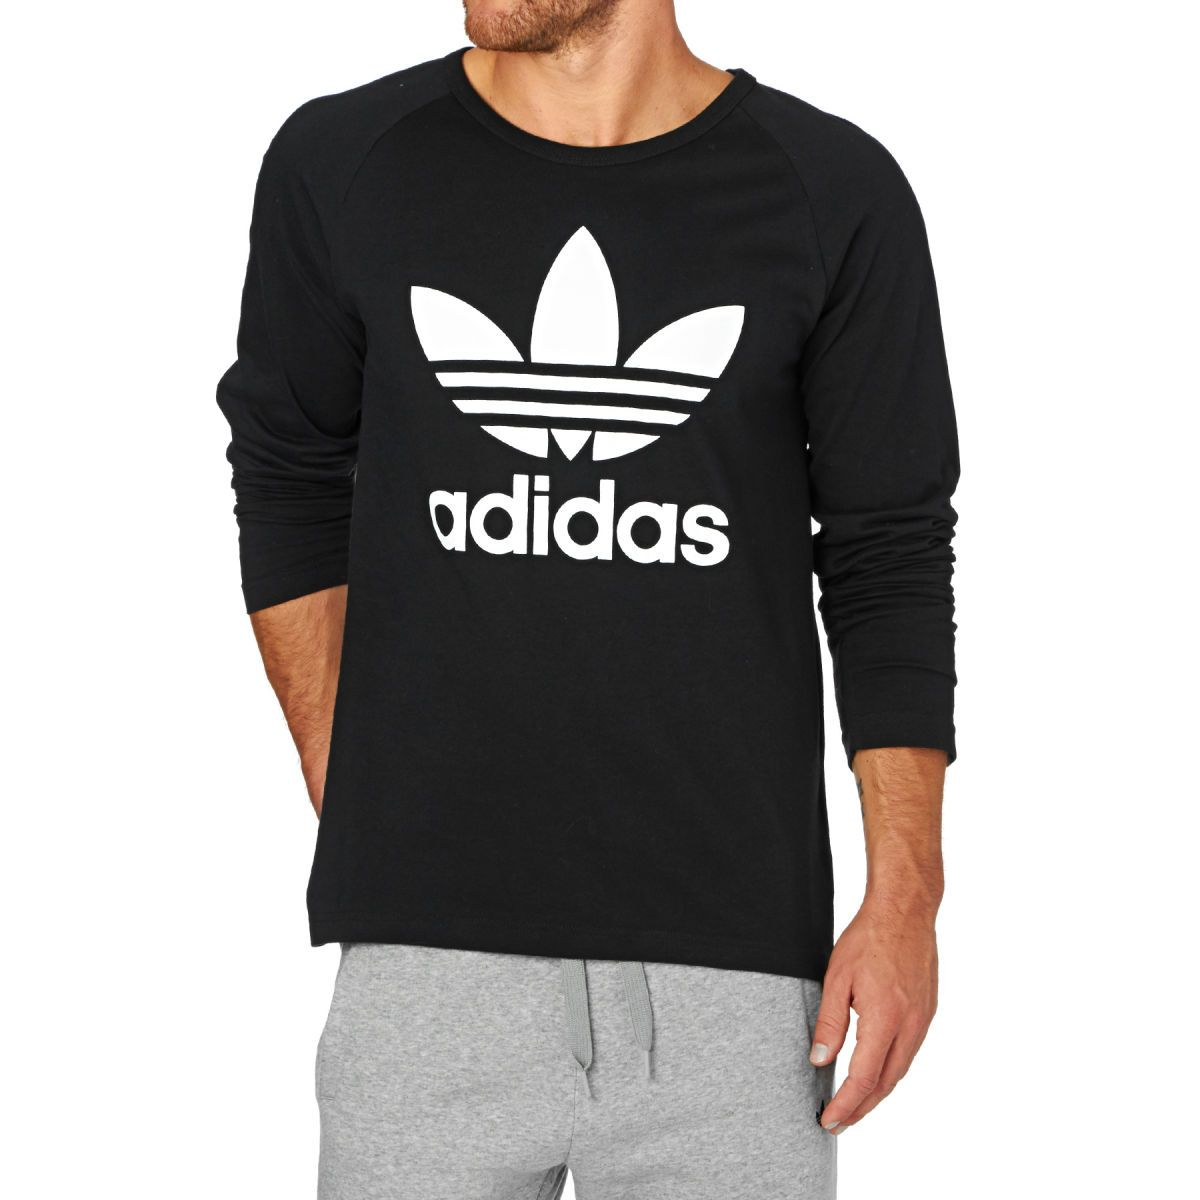 Adidas Originals Trefoil Long Sleeve T-Shirt - Black